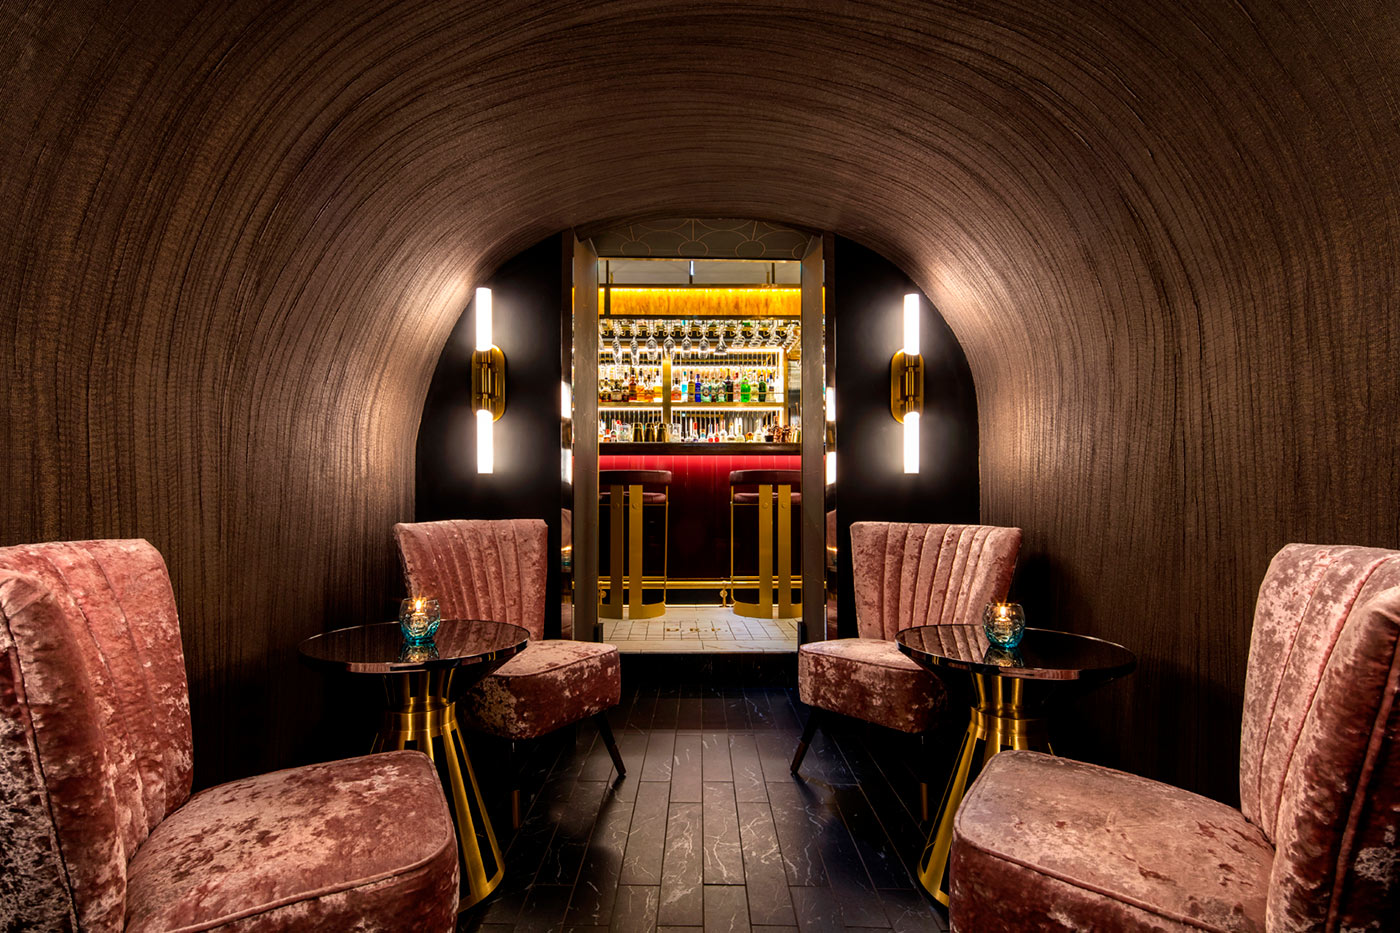 London Nightlife & A Rich Heritage of Establishment and Scandal - Graphic & Interior Design